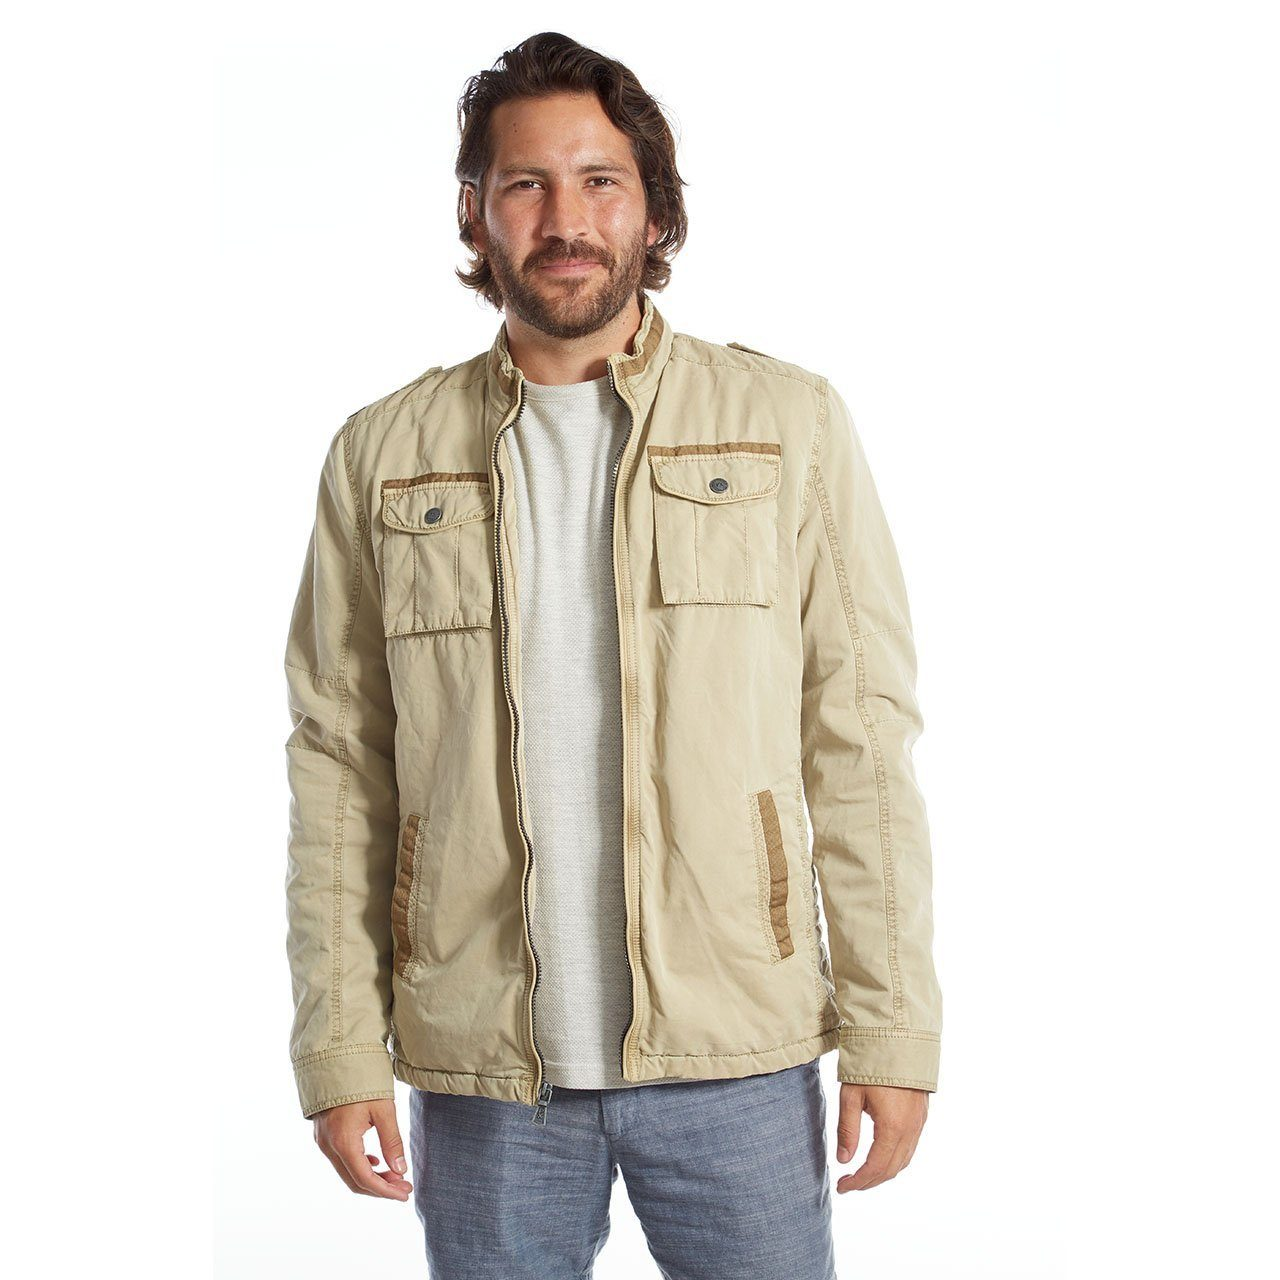 Vegan Leather Jackets - Lee Moto Jacket